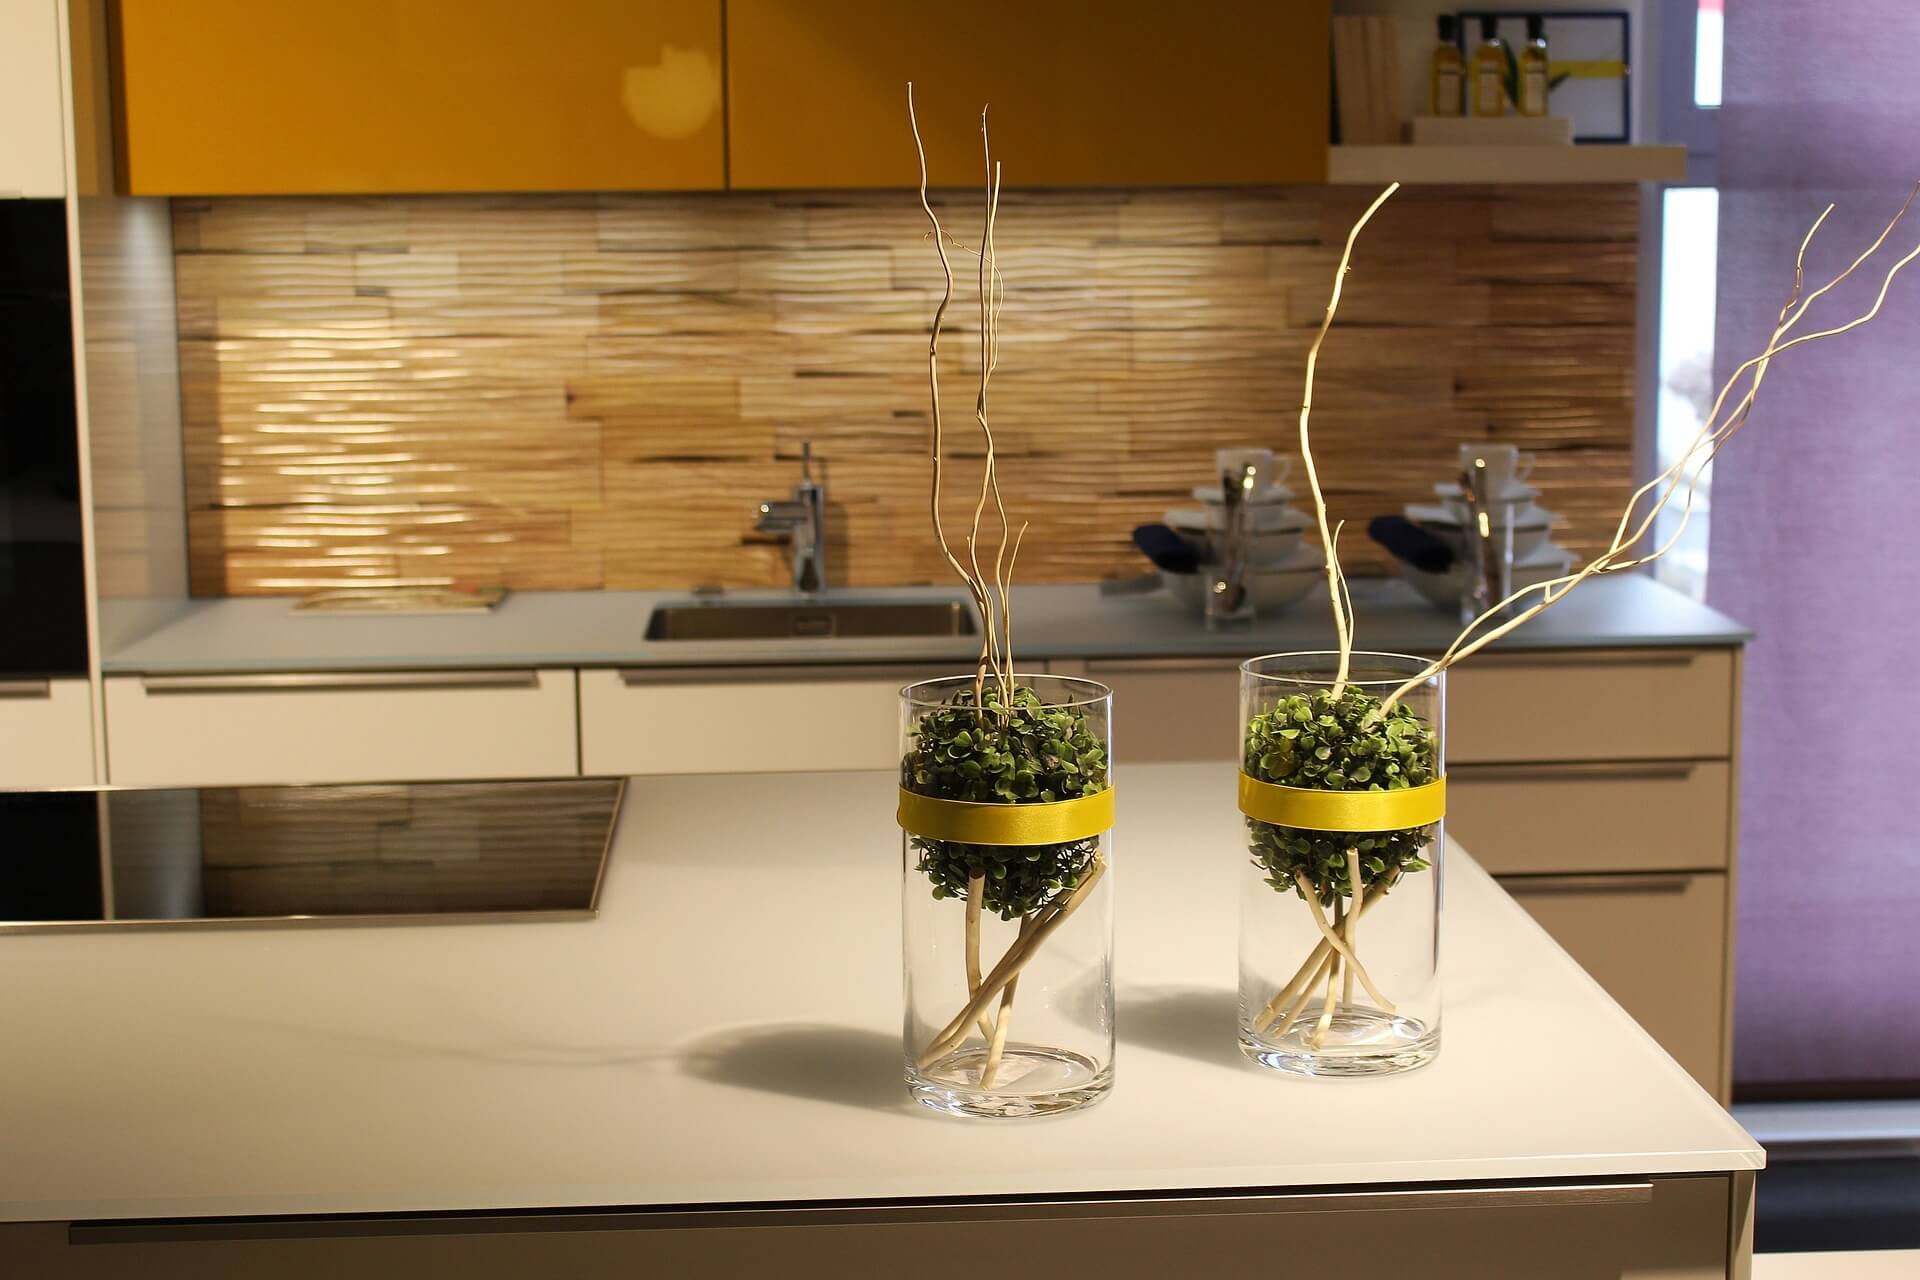 4 Creative Ways Use Wallpaper In The Kitchen Interior Design Design News And Architecture Trends